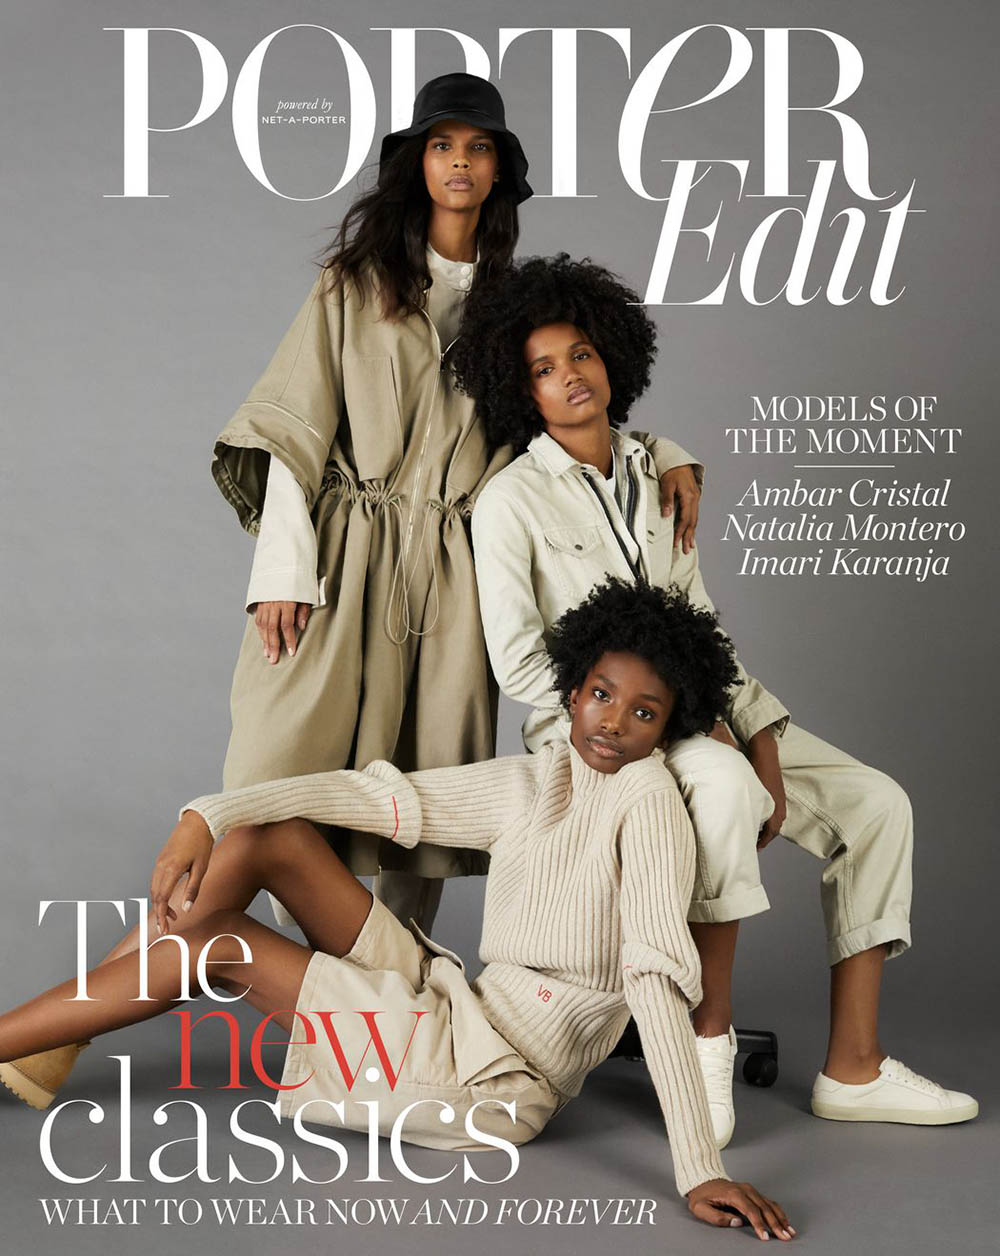 Imari Karanja, Ambar Cristal and Natalia Montero cover Porter Edit February 15th, 2019 by Leon Mark